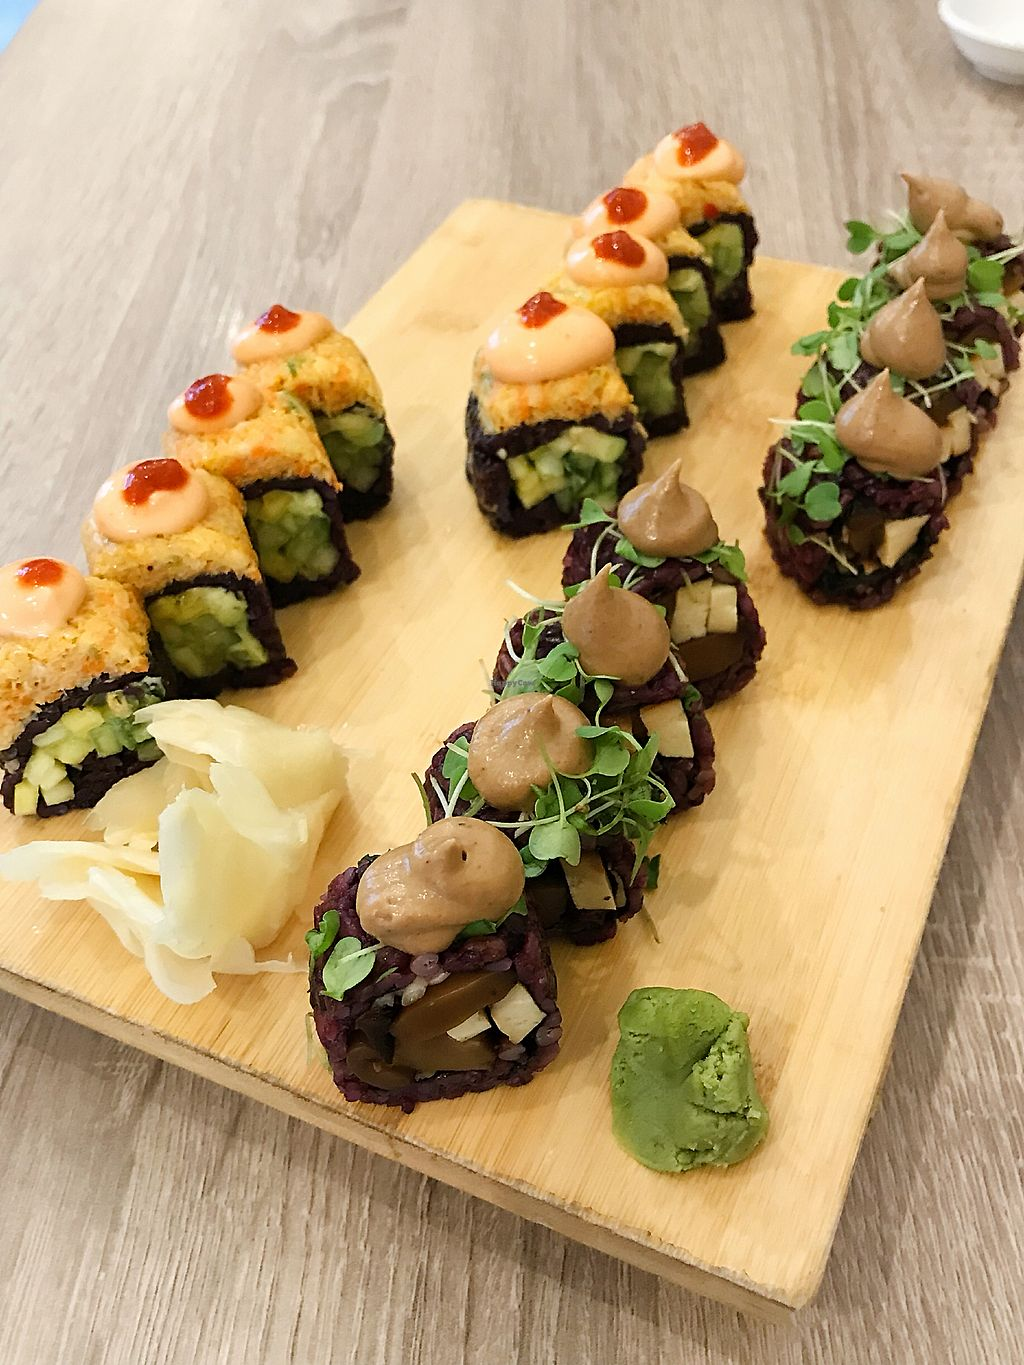 """Photo of Beyond Sushi - Midtown West  by <a href=""""/members/profile/Dimanta"""">Dimanta</a> <br/>Spicy Mang & Mighty Mushroom <br/> March 16, 2018  - <a href='/contact/abuse/image/54327/371412'>Report</a>"""